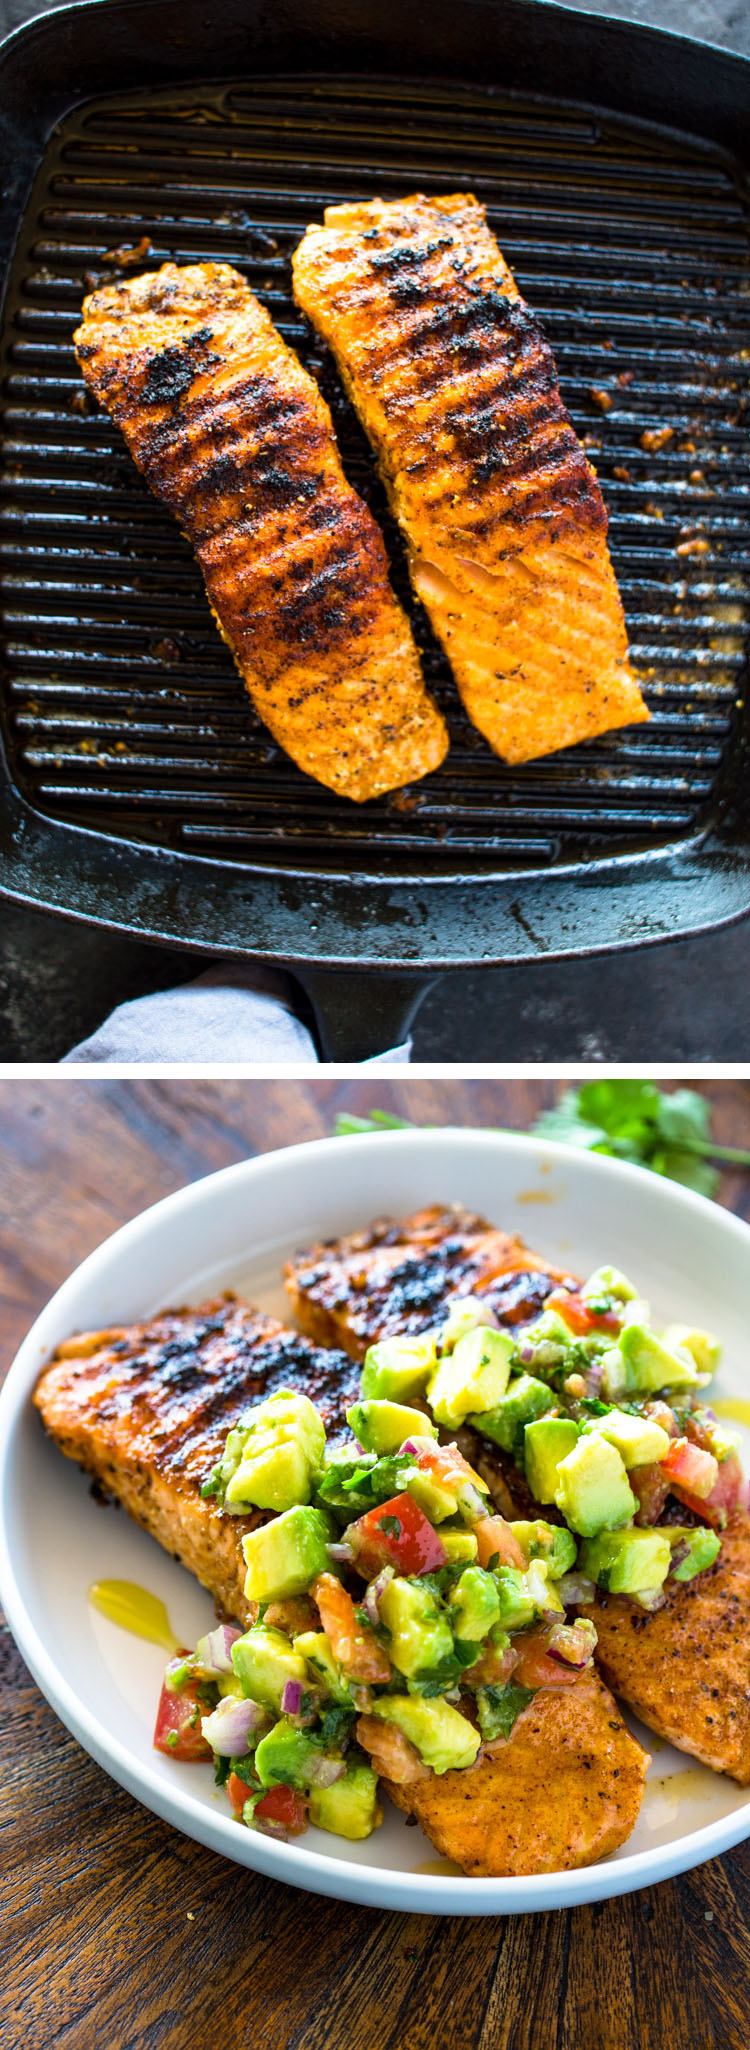 Salmon with Avocado Salsa (Low-Carb, Paleo, Whole30, Healthy)